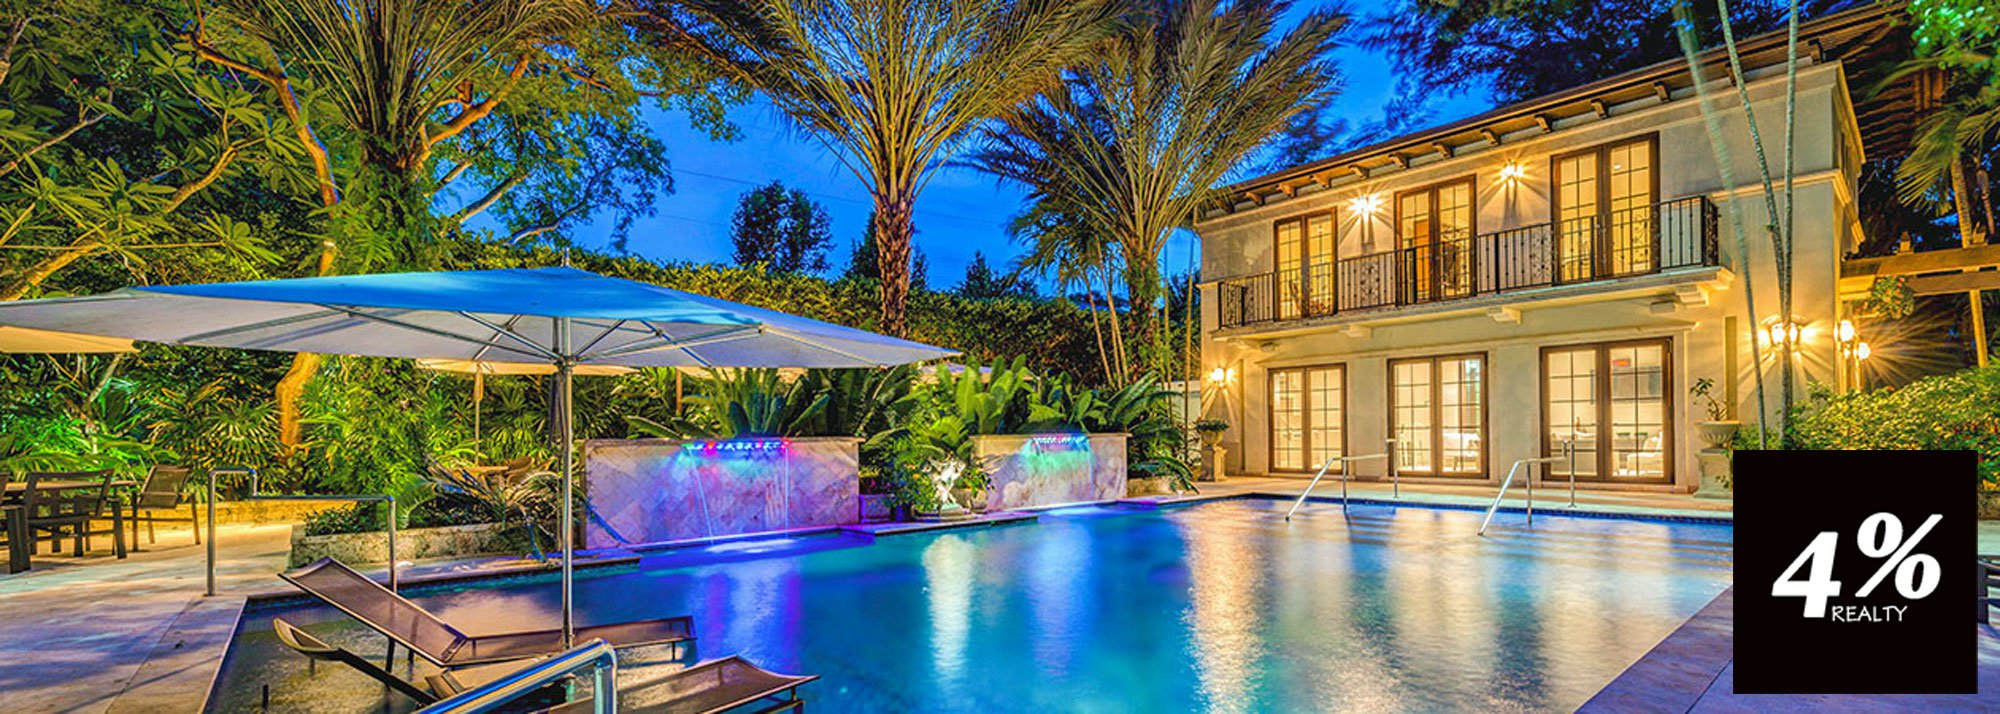 Luxury Homes Million+ | Sell and Save